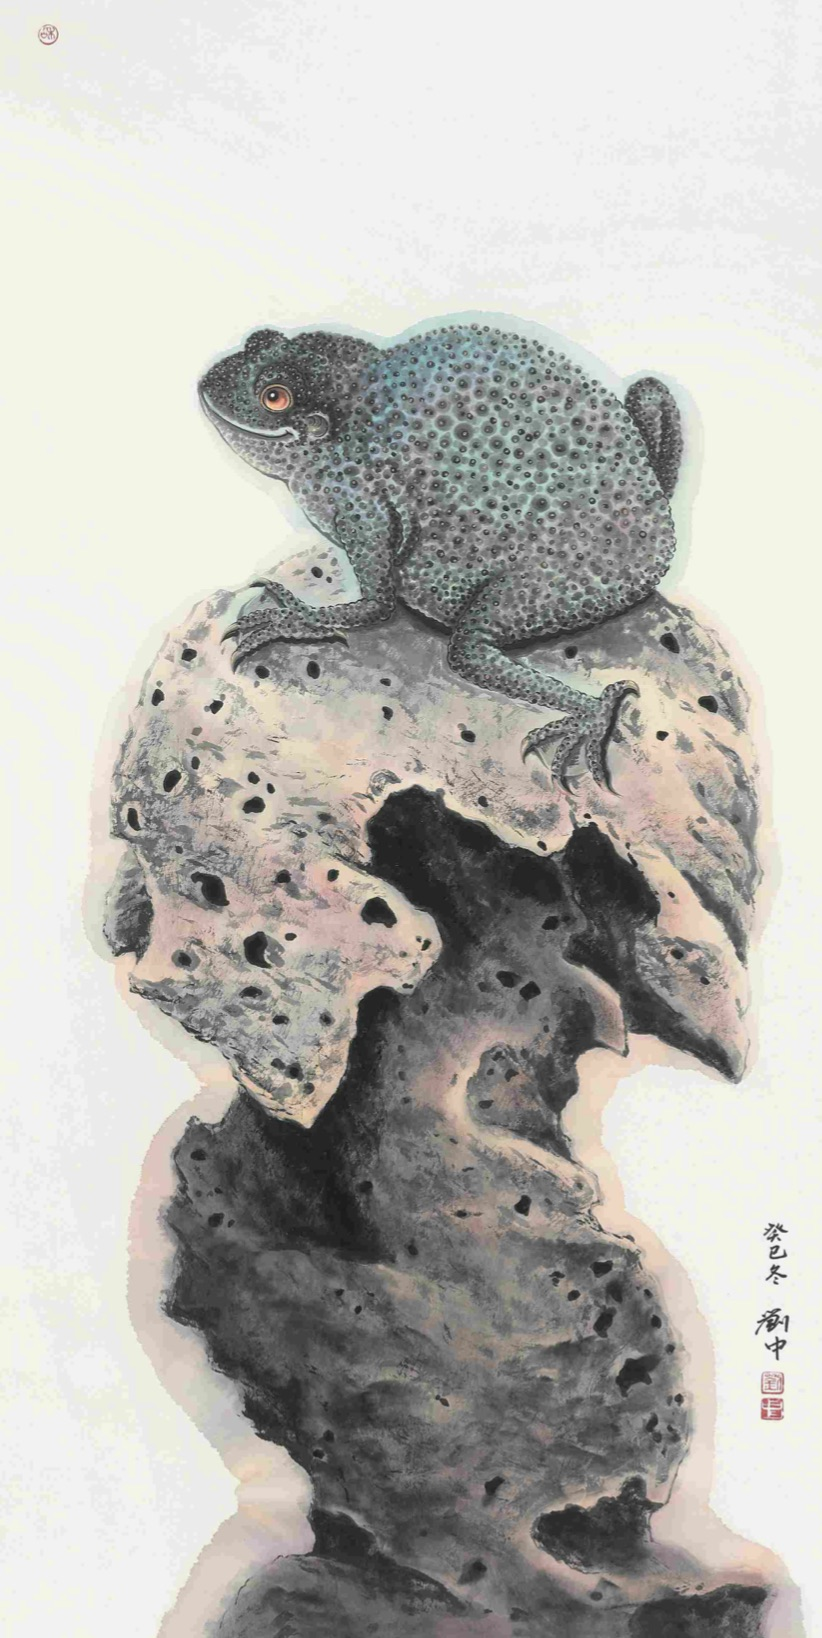 Copy of 鑫⽯ A Toad On A Stone 2013